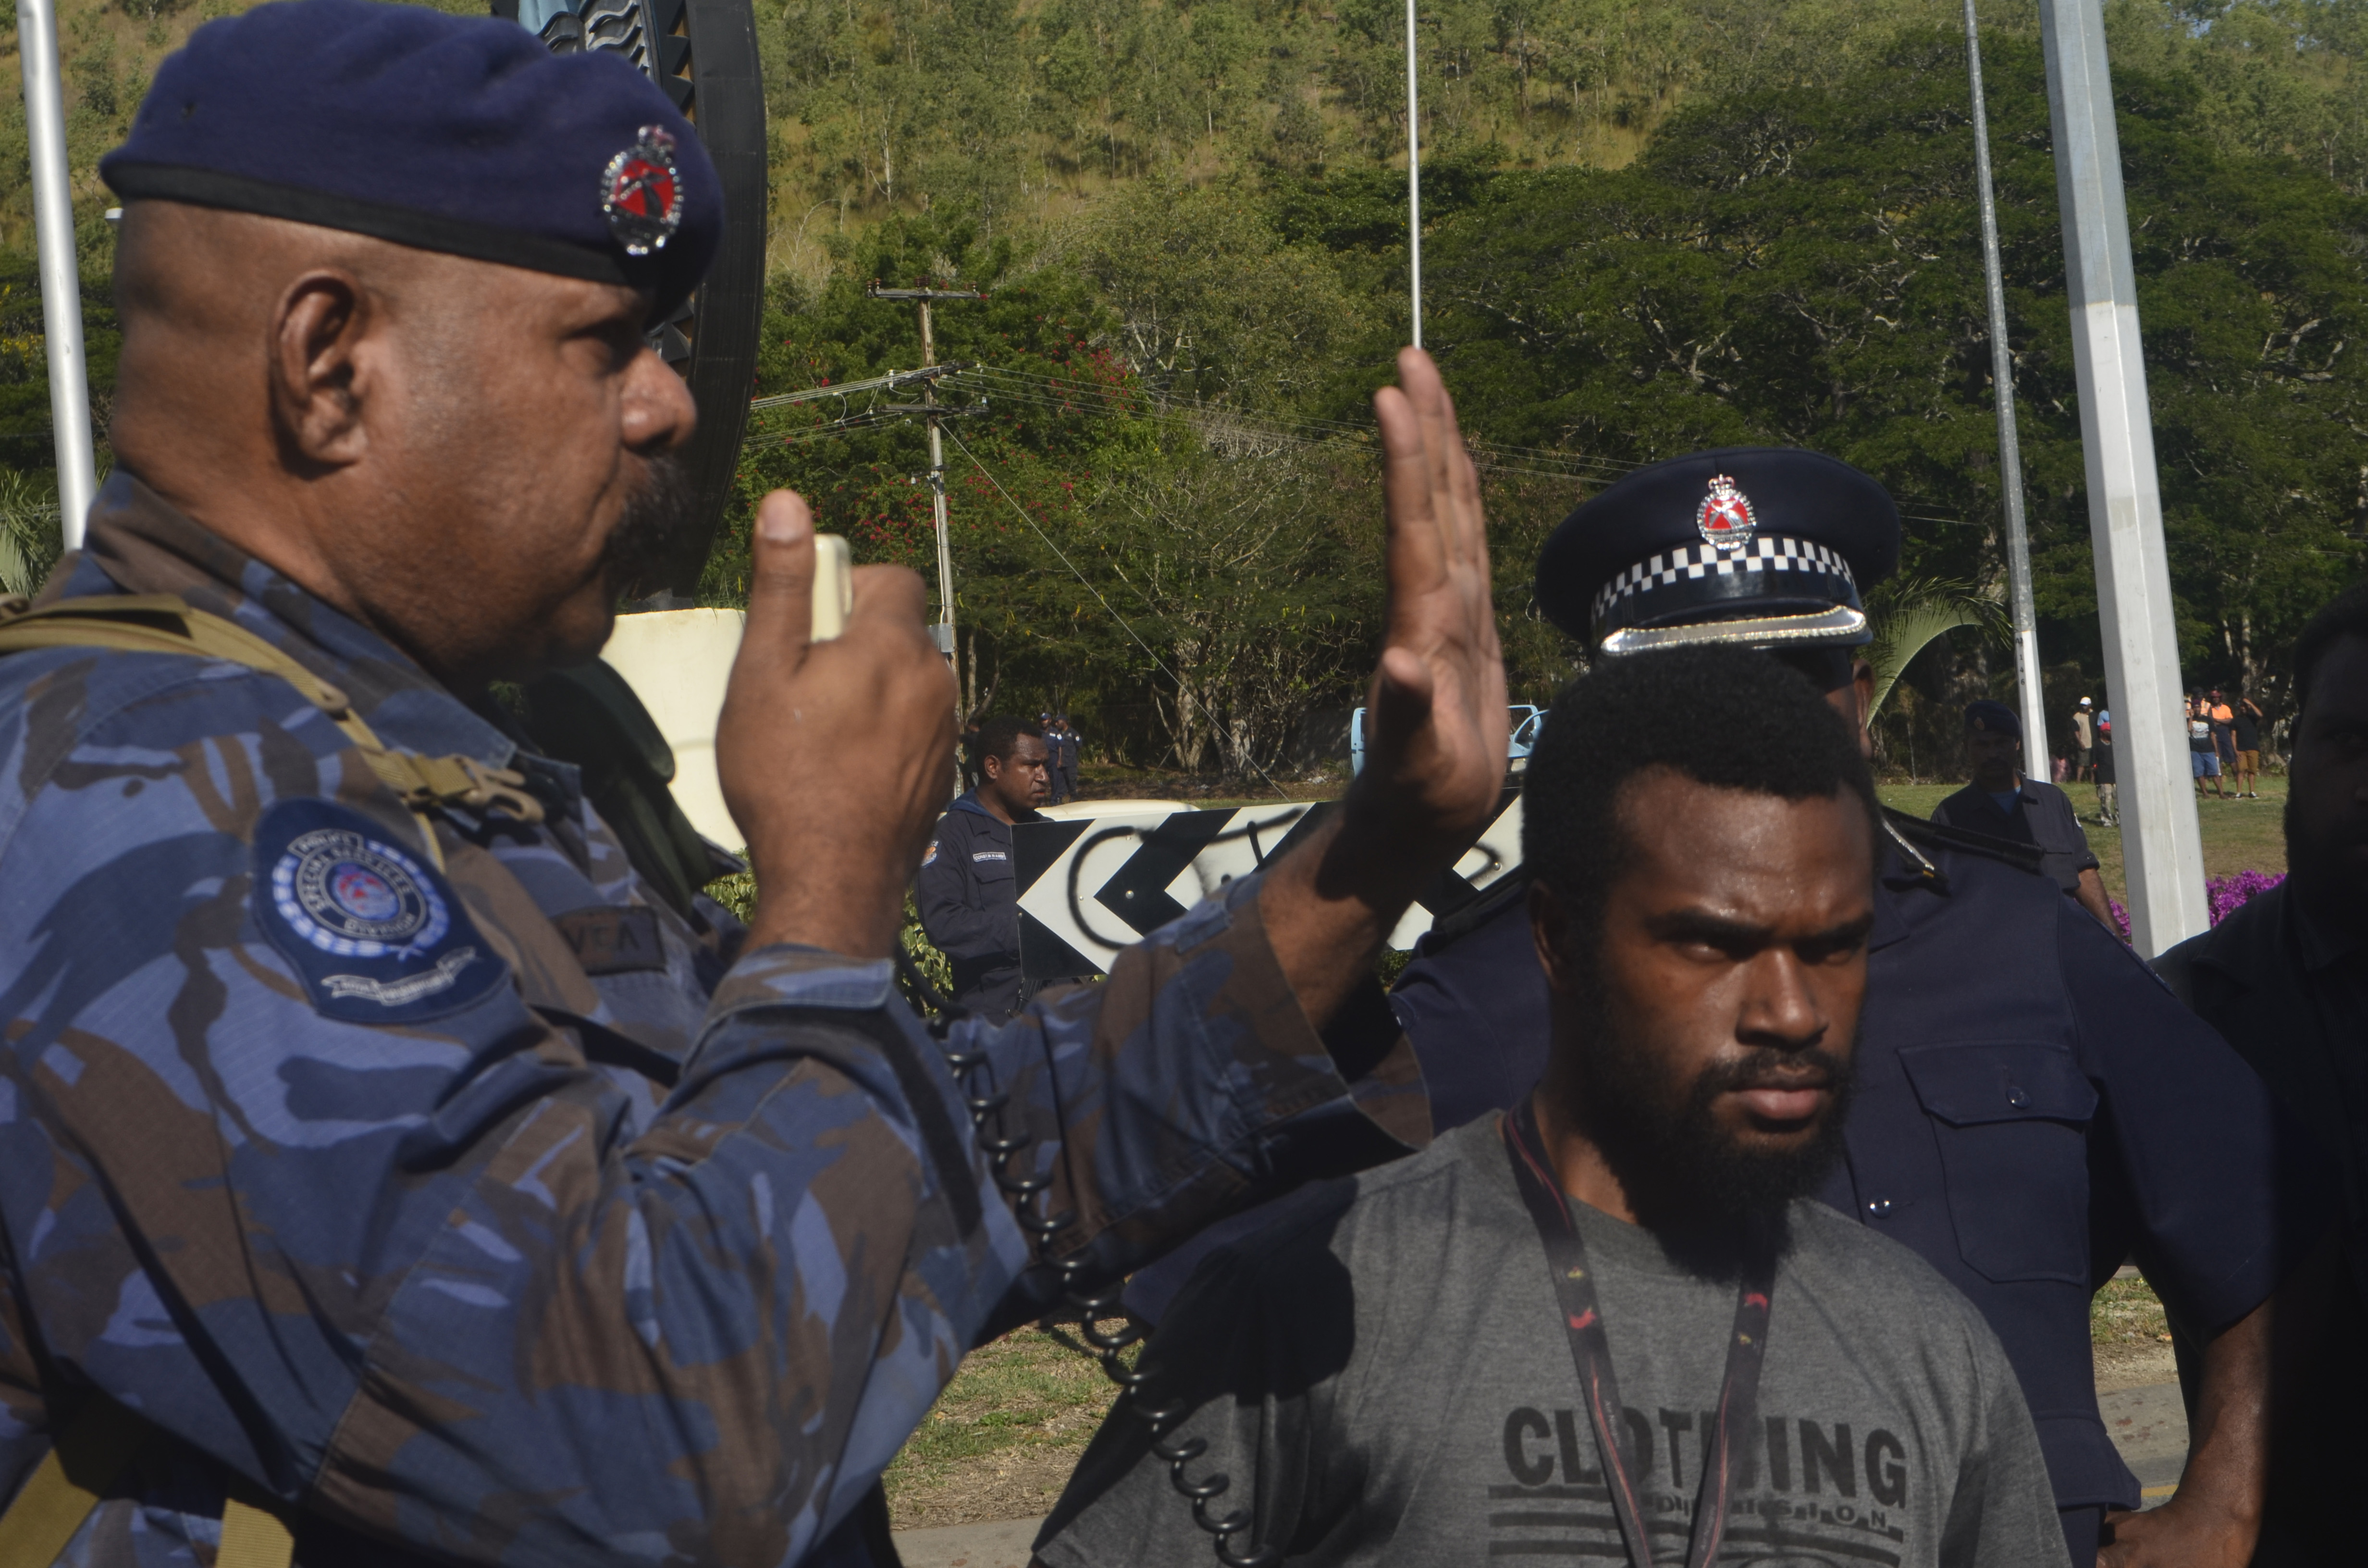 In this handout image provided by PNGFM News, protesters and police are seen during an anti-government protest at the University of Papua New Guinea on June 8, 2016 in Port Moresby